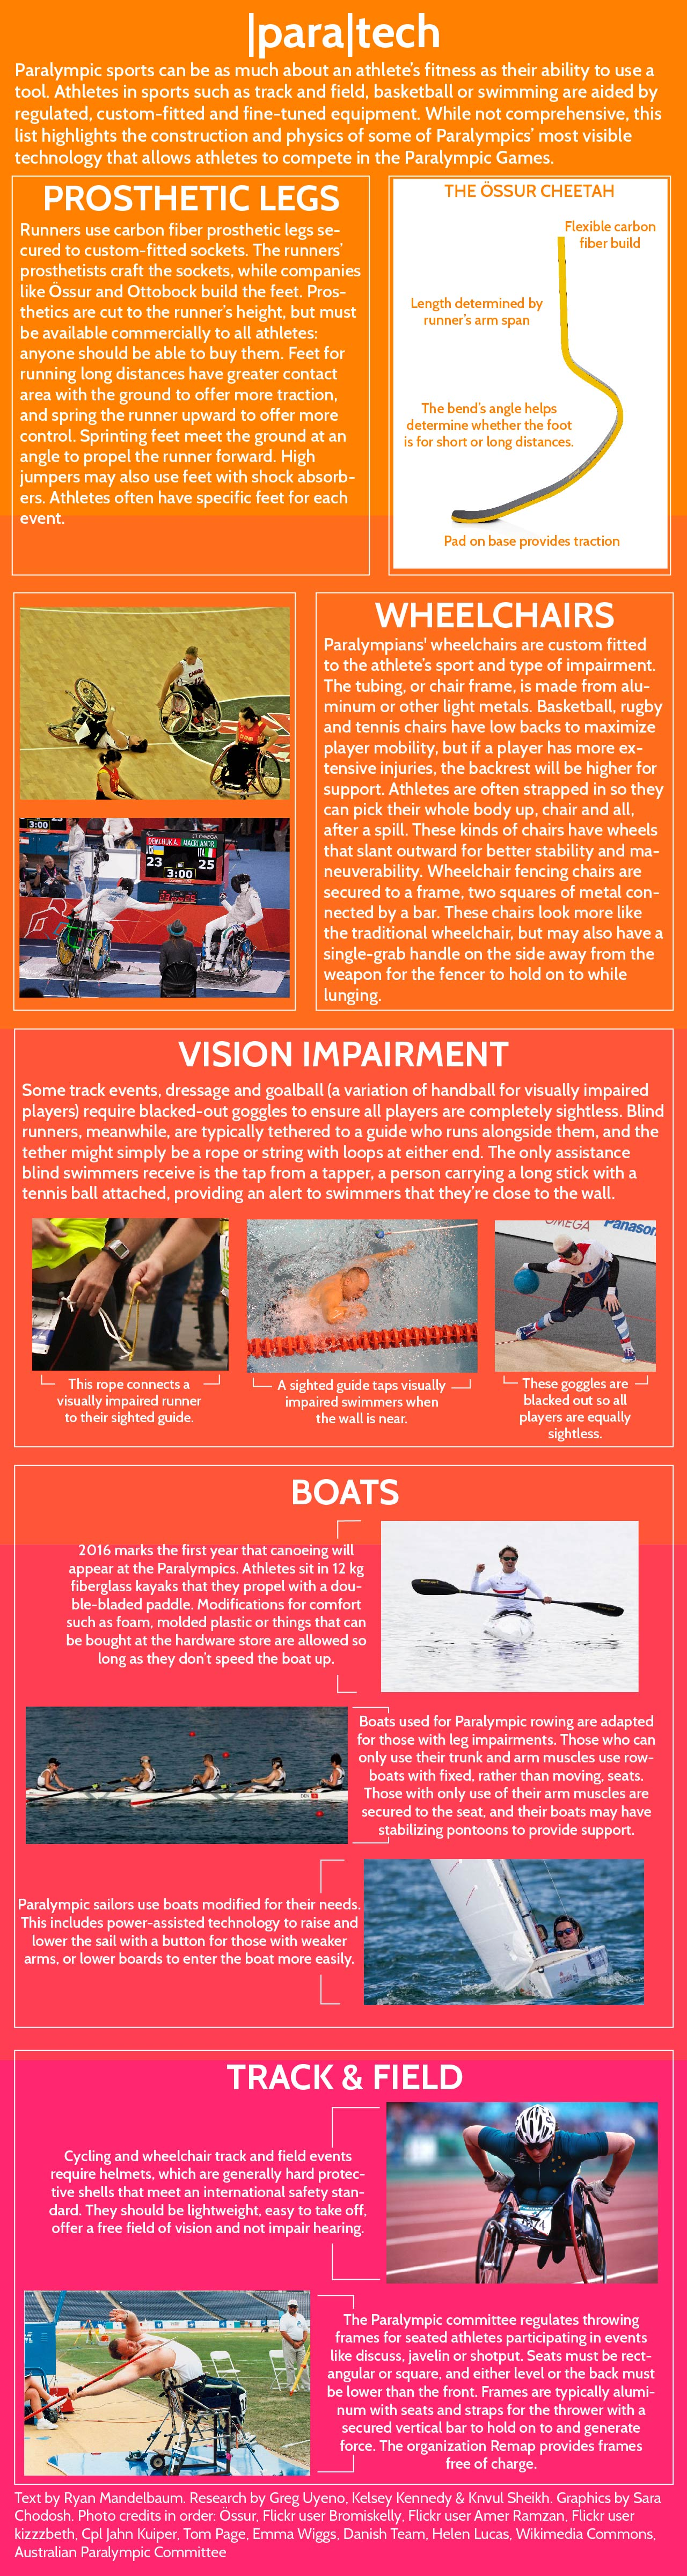 Infographic about technology in the Paralympics